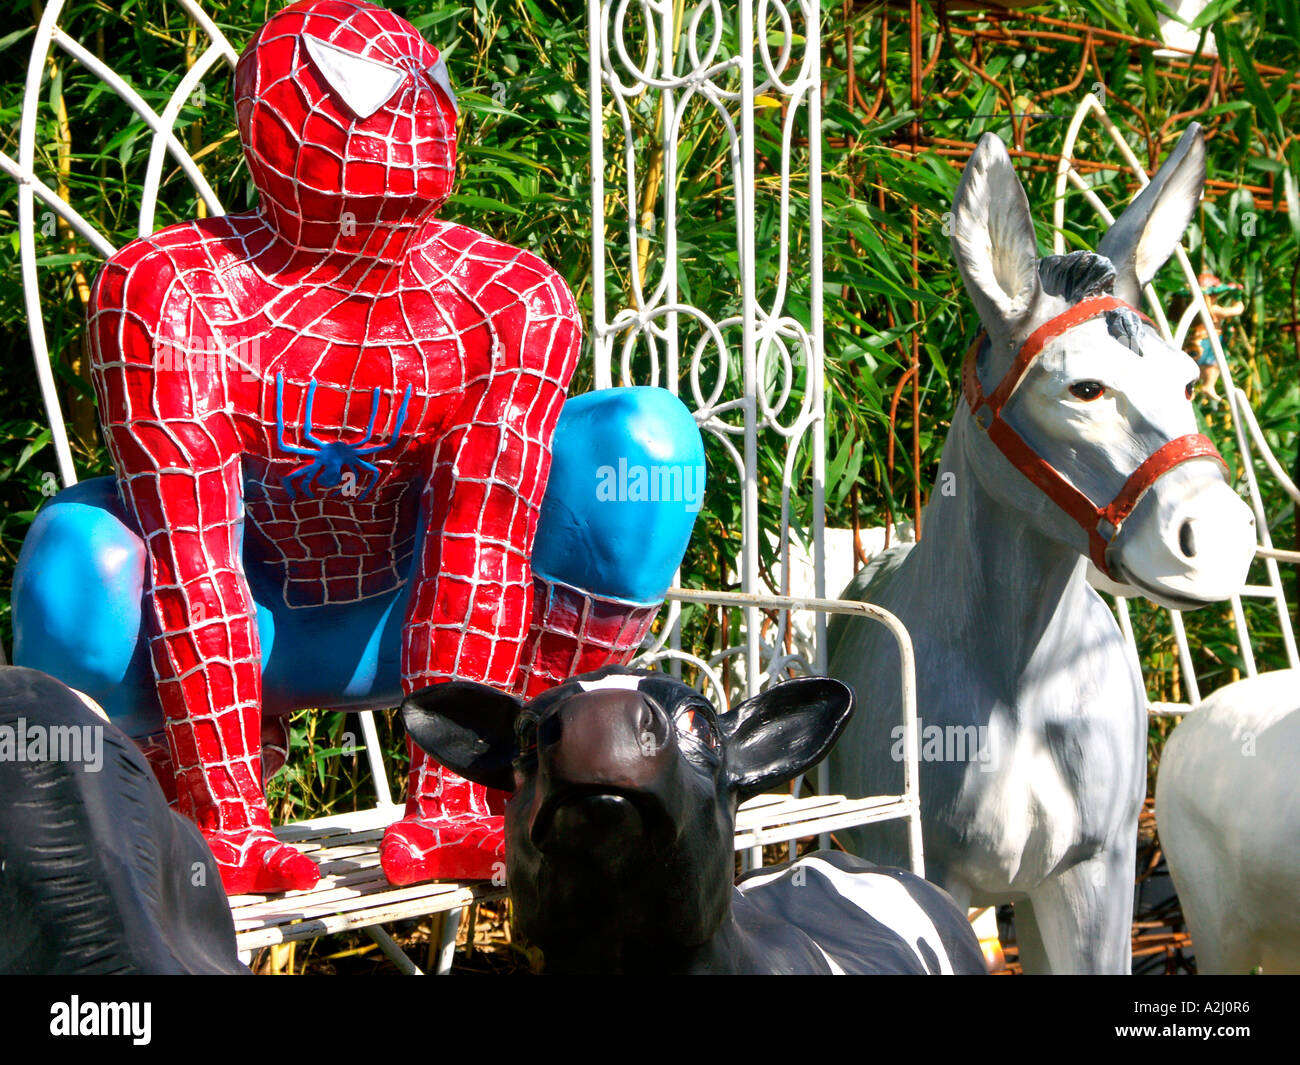 Donkey ornaments -  A Stall Selling Outdoor Garden Ornaments Including Spiderman And Donkey At The Malvern Spring Flower Show